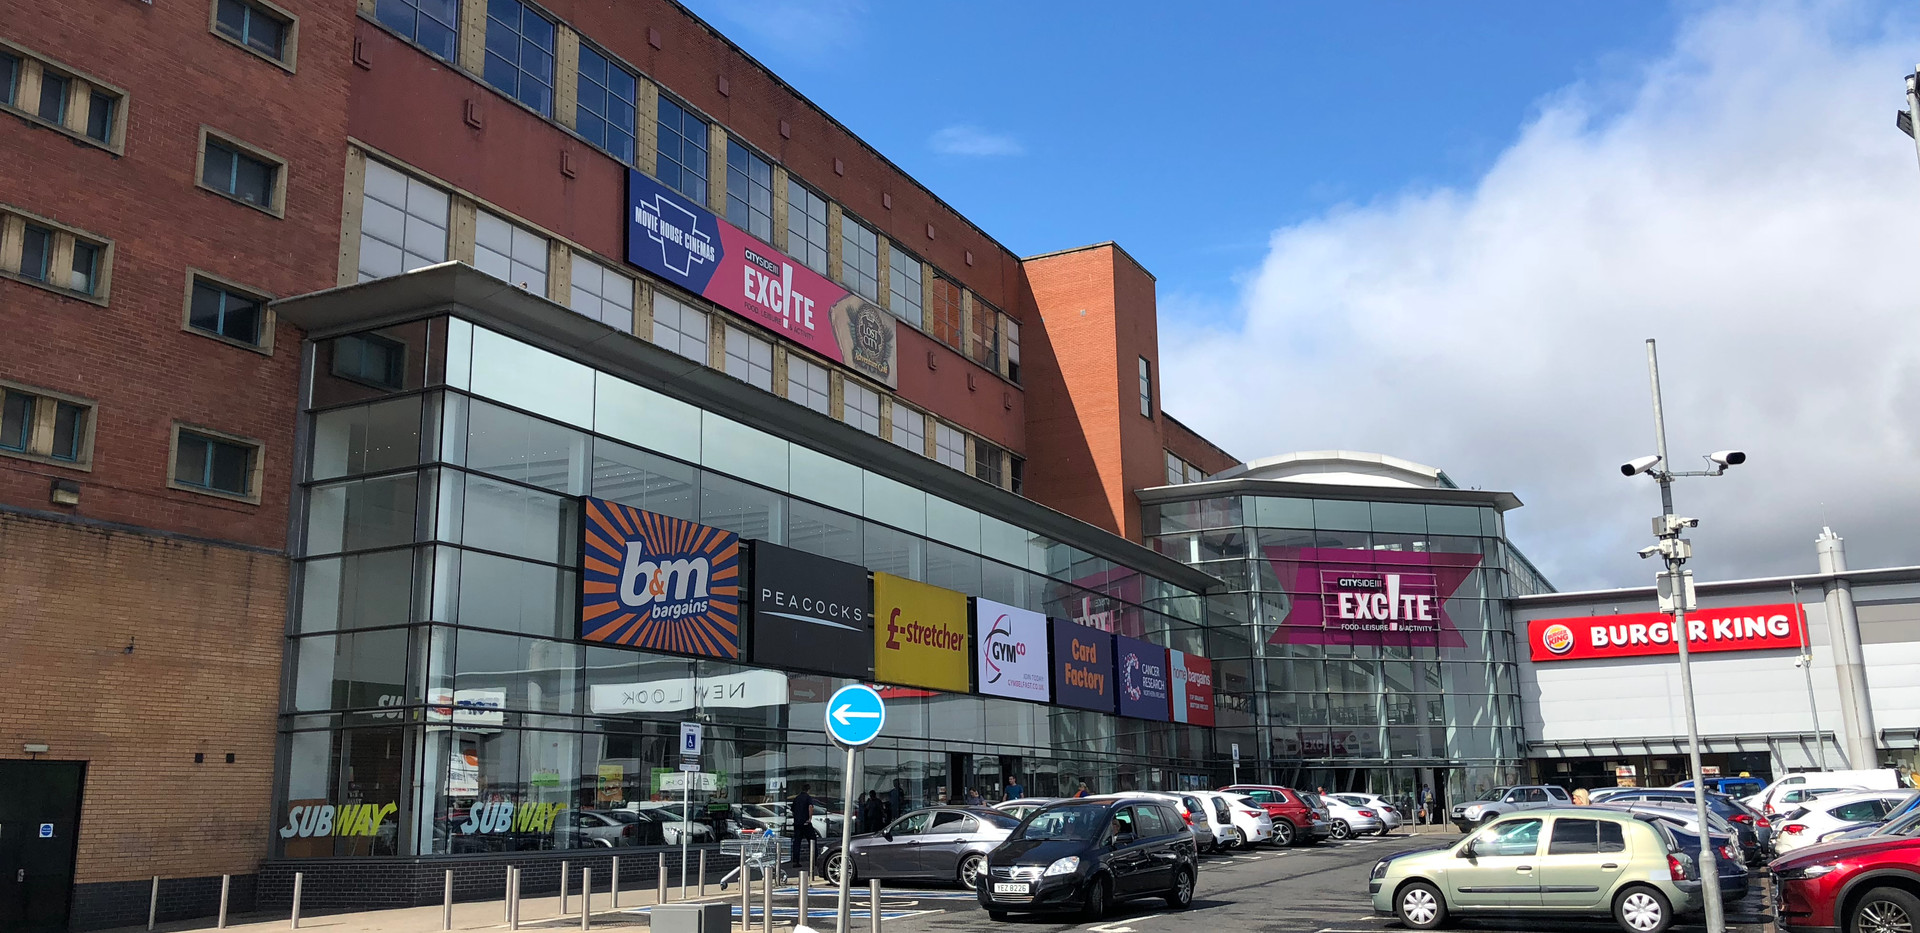 Cityside Shopping Centre 3.jpg